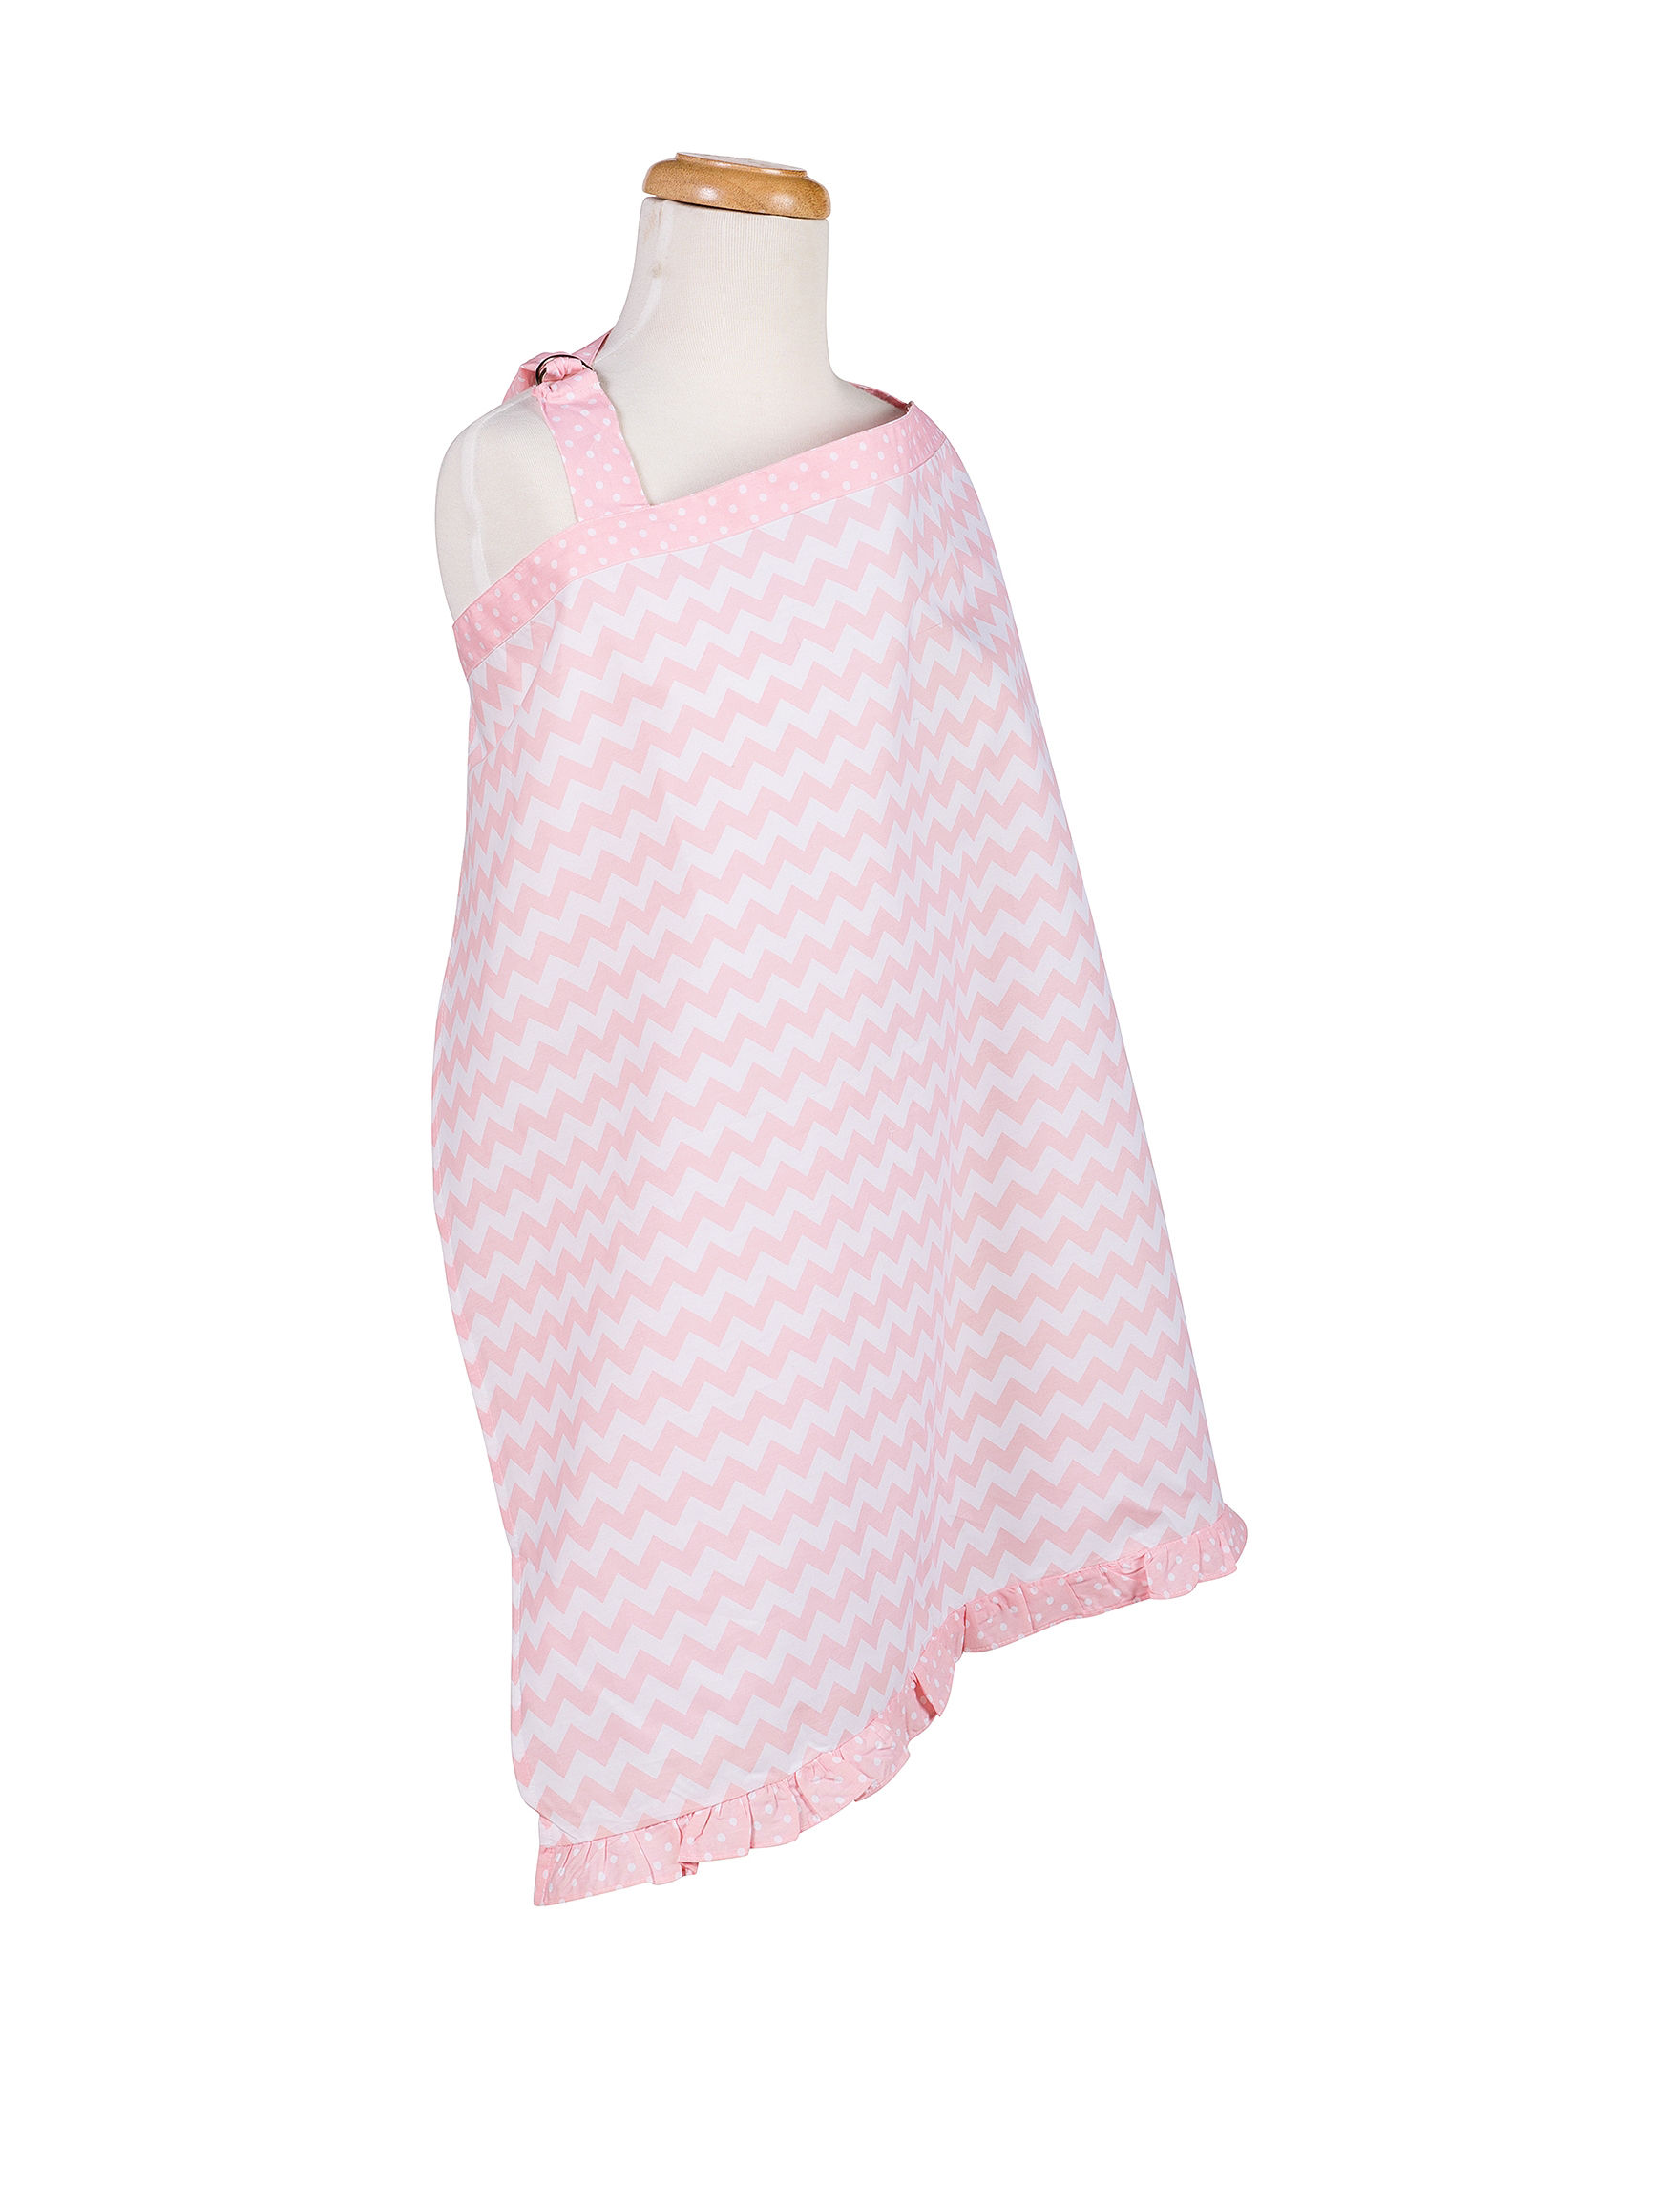 Trend Lab Pink / White Breastfeeding